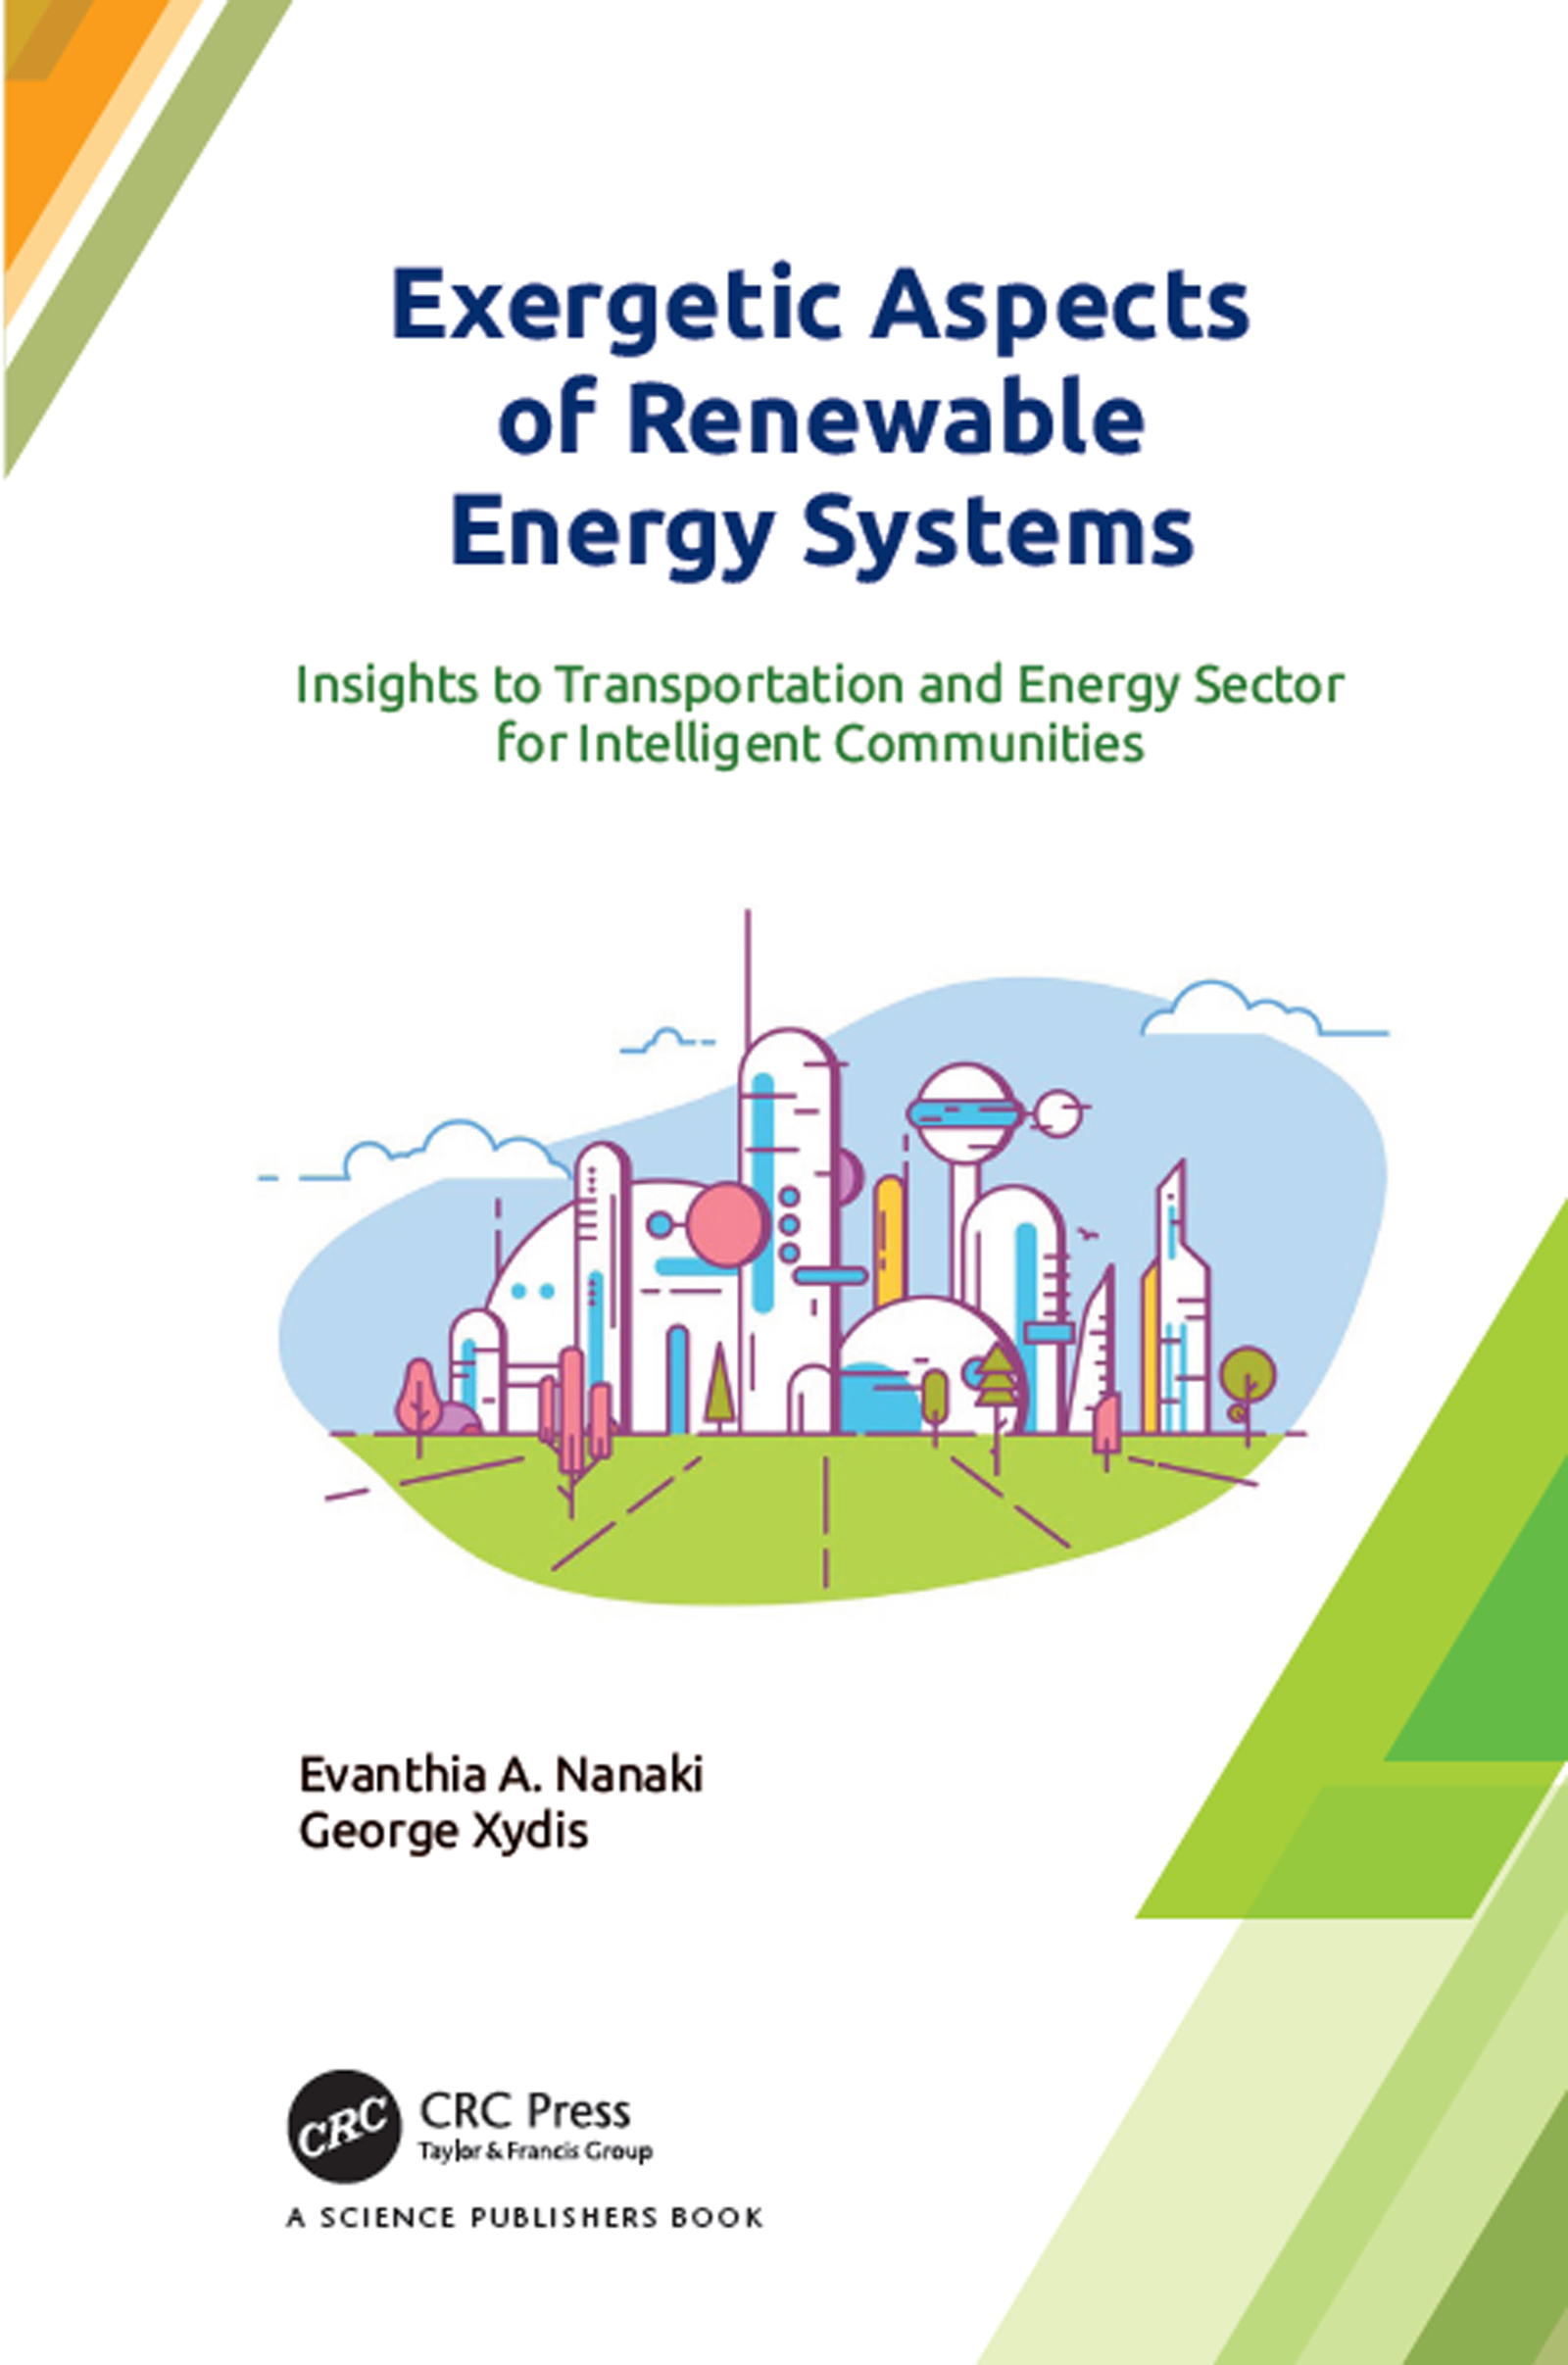 Exergetic Aspects of Renewable Energy Systems: Insights to Transportation and Energy Sector for Intelligent Communities book cover